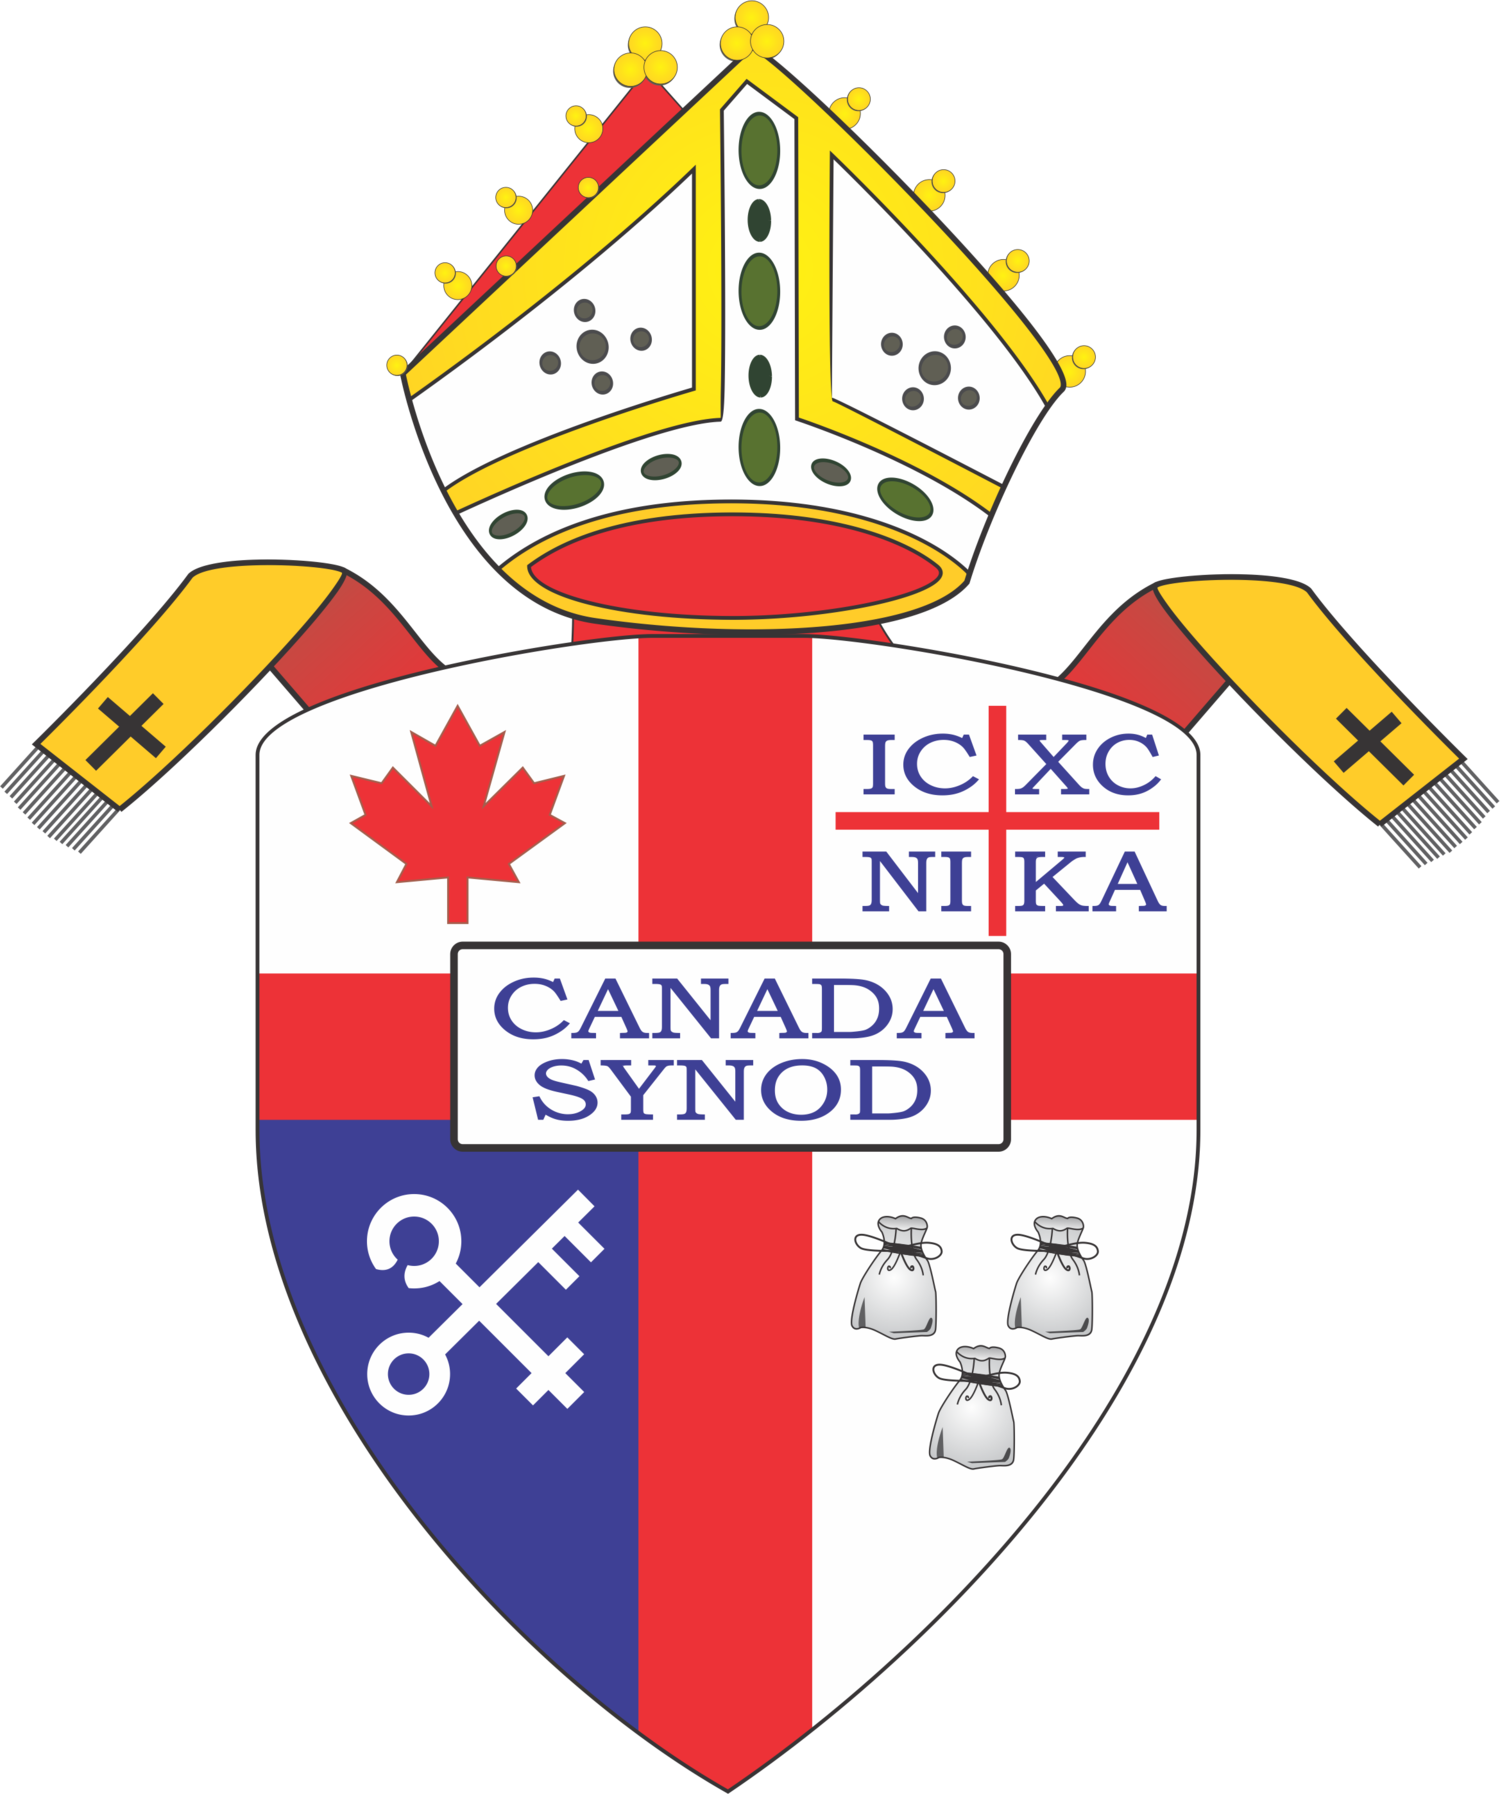 The Independent Anglican Church, Canada Synod 1934